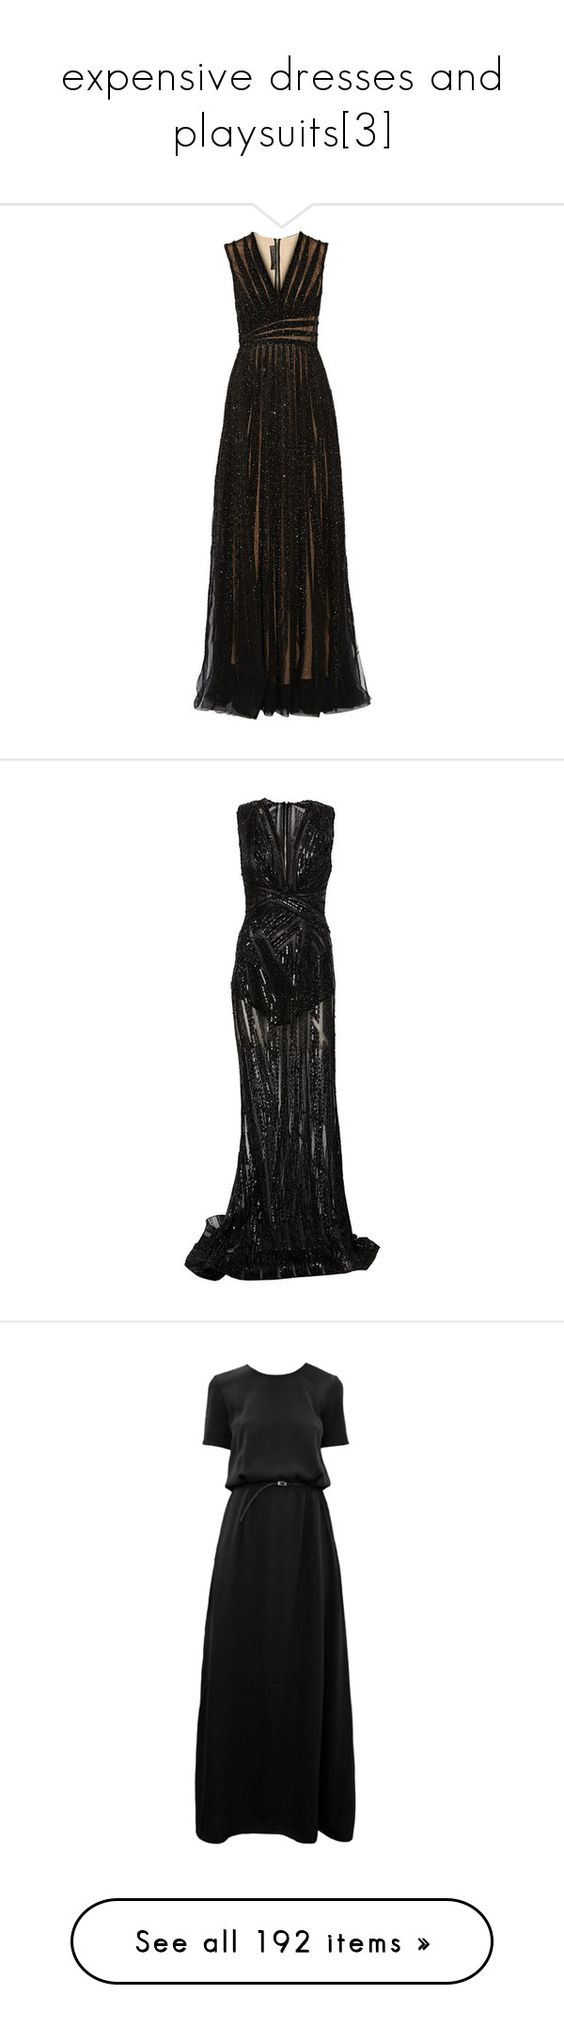 """""""expensive dresses and playsuits[3]"""" by gmbtch ❤ liked on Polyvore featuring dresses, gowns, elie saab, long dress, long beaded dress, v-neck dresses, tulle dress, v neck gown, sequin evening gowns and long dresses"""